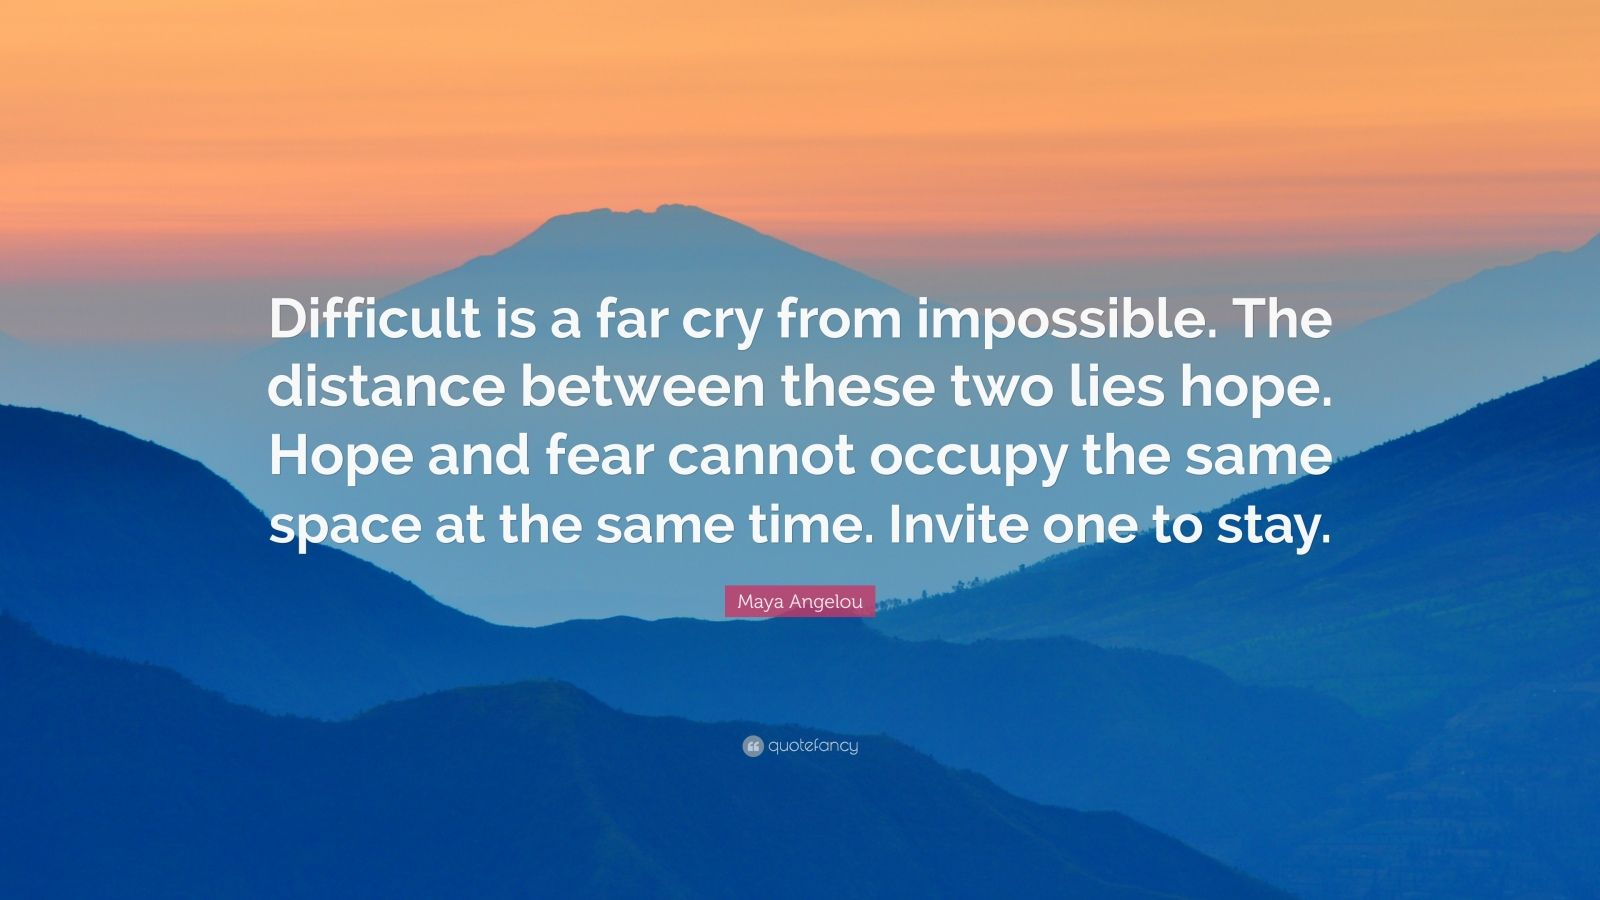 """Maya Angelou Quote: """"Difficult is a far cry from impossible. The distance between these two lies hope. Hope and fear cannot occupy the same space at the same time. Invite one to stay."""""""